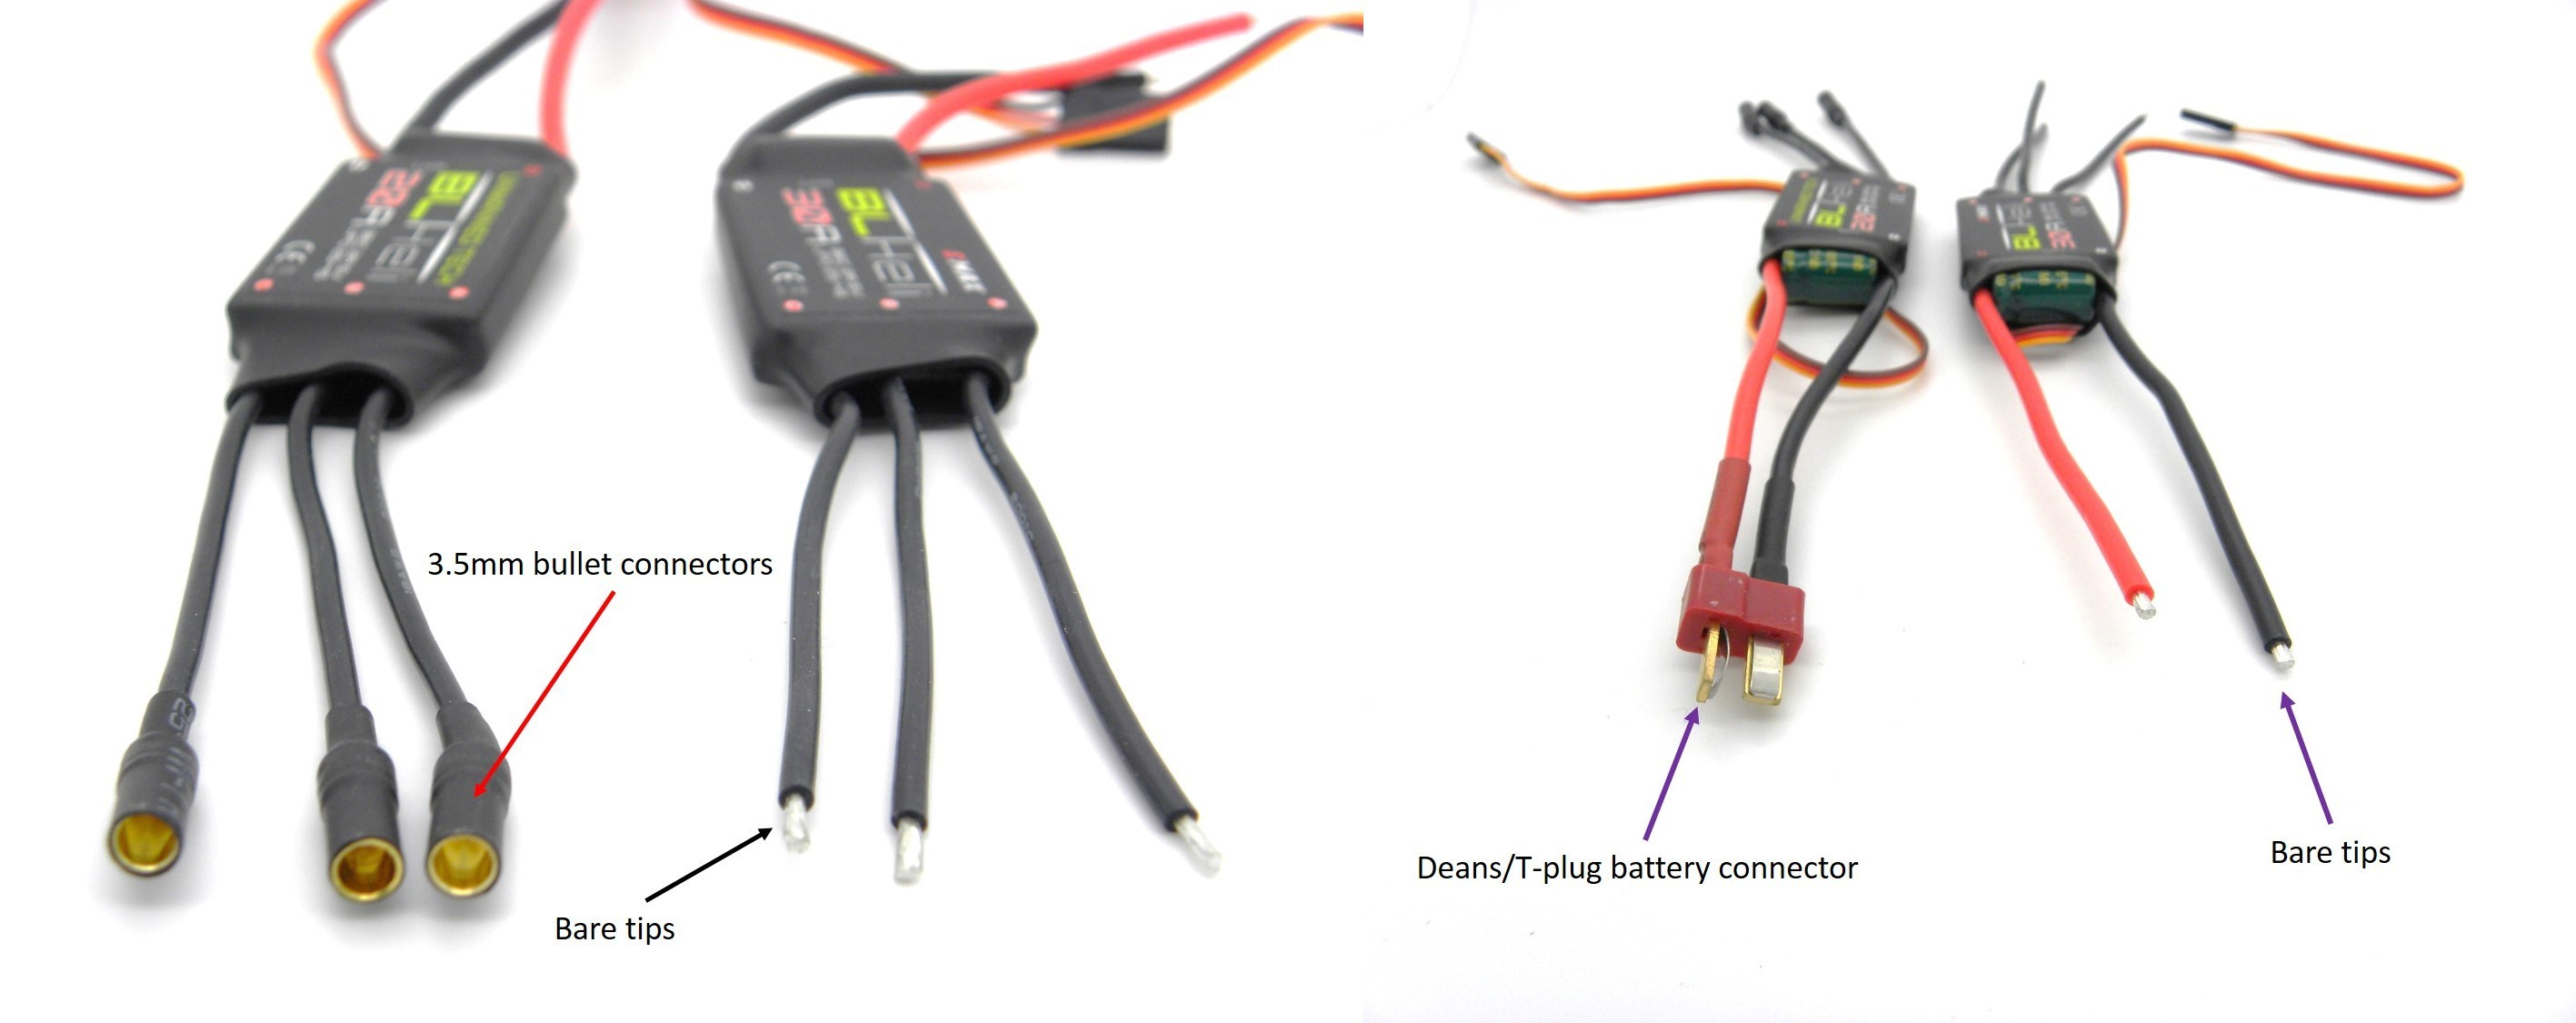 What to consider when buying a ESC for your multirotor - Guides ...